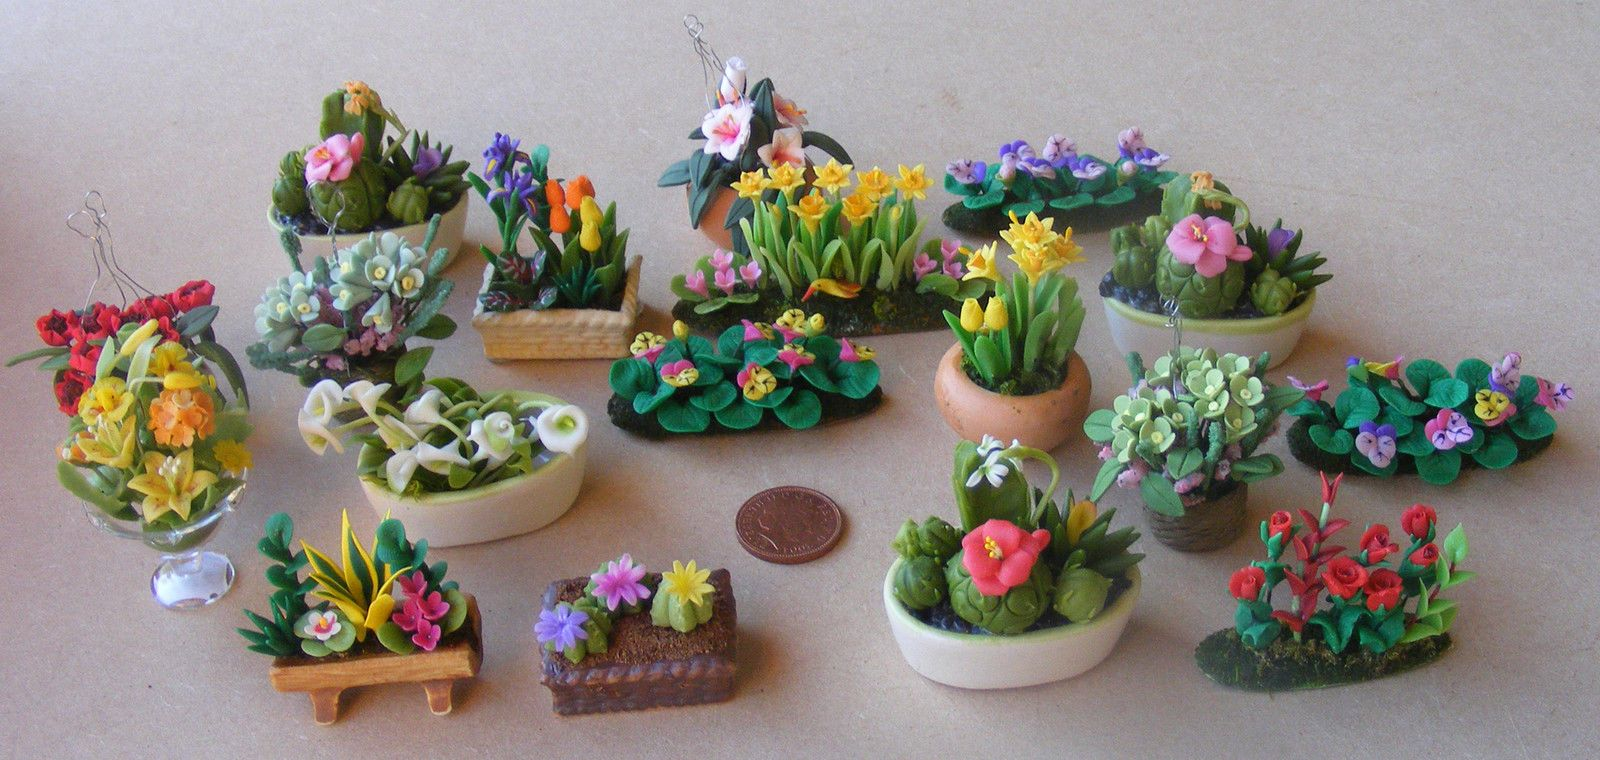 1:12 dollhouse miniature handmade garden plants